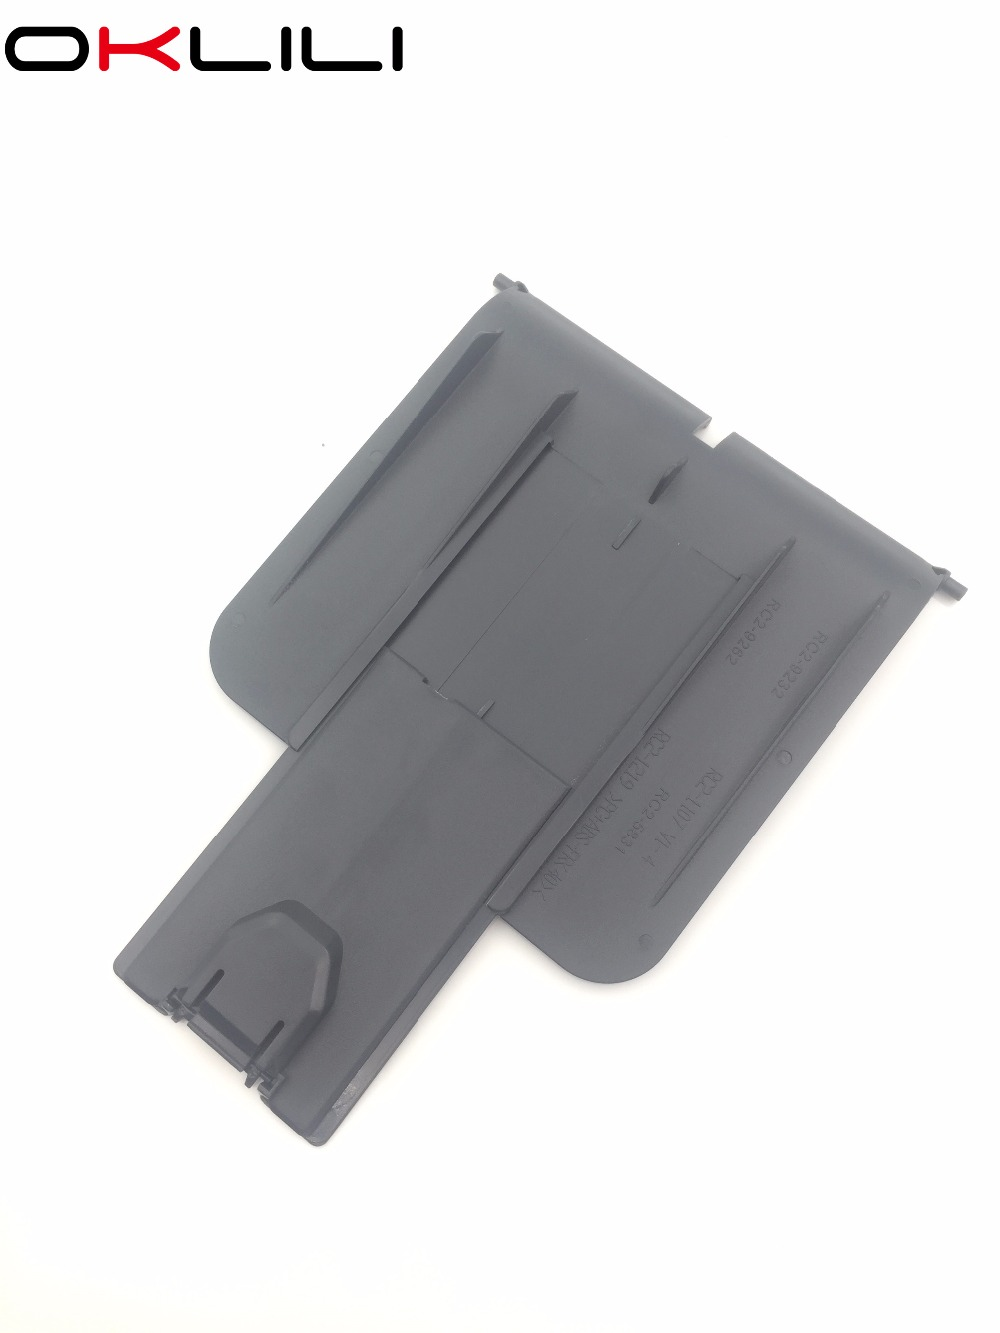 NEW RM1-6903-000 Paper Output Delivery Tray for HP P1102 P1102w P1102s M1536 P1005 P1006 P1007 P1008 P1106 P1108 P1109 P1607 цена